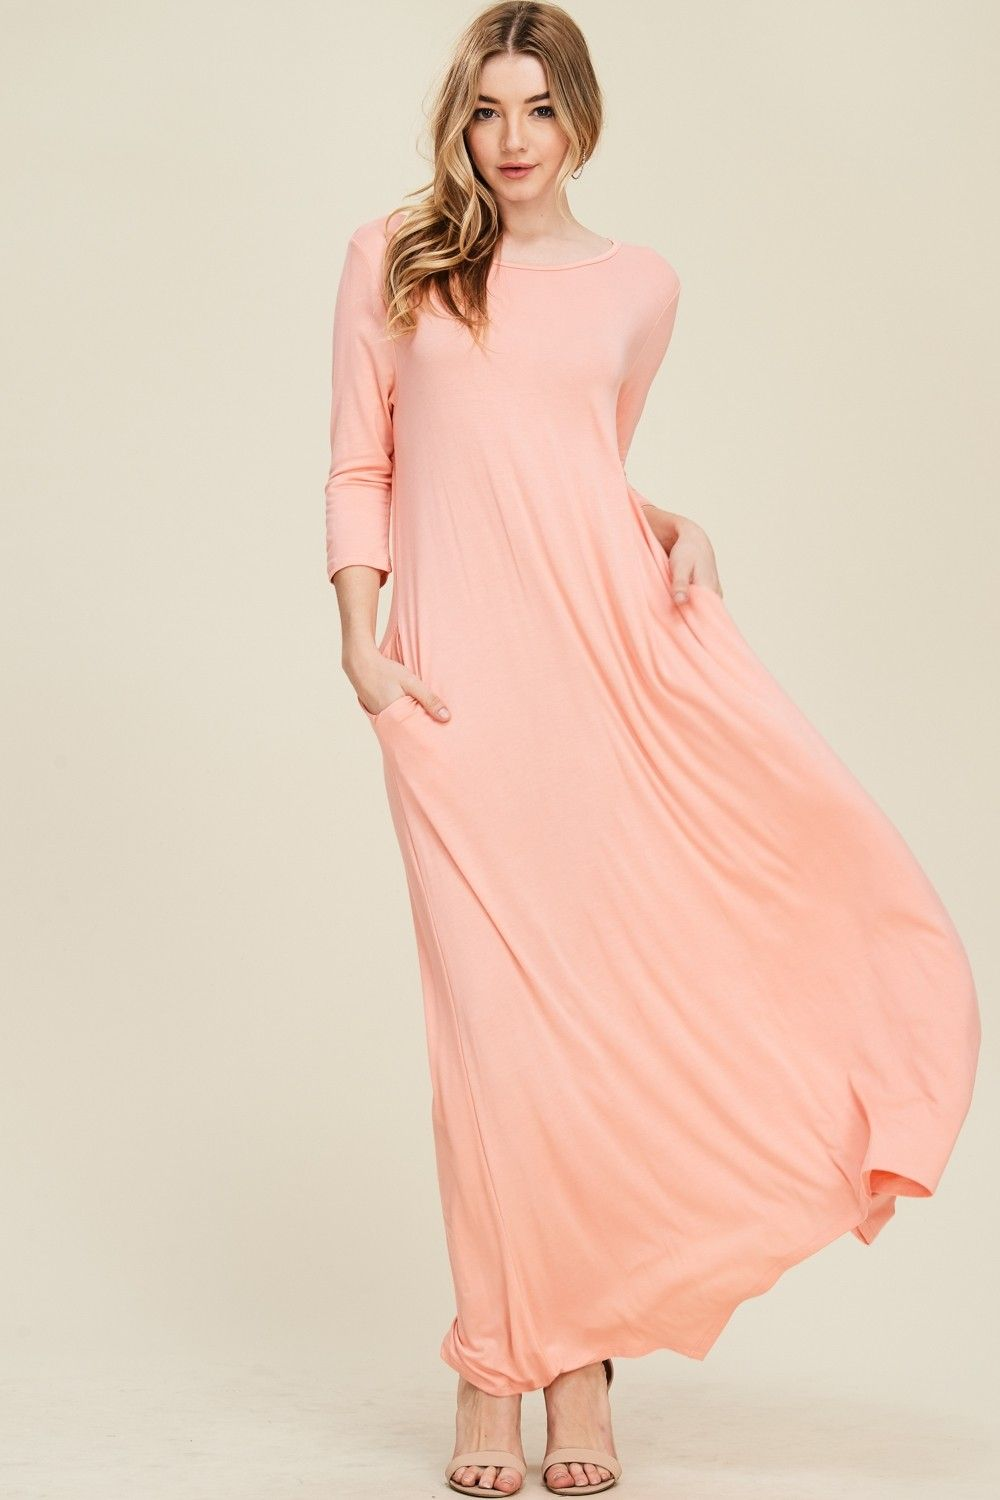 3 4 Sleeve Maxi Dress Style D5212 Knit Dress Featuring Solid 3 4 Sleeves Round Neck Side Pockets Maxi Dress R Maxi Dress Dresses Maxi Dress With Sleeves [ 1500 x 1000 Pixel ]